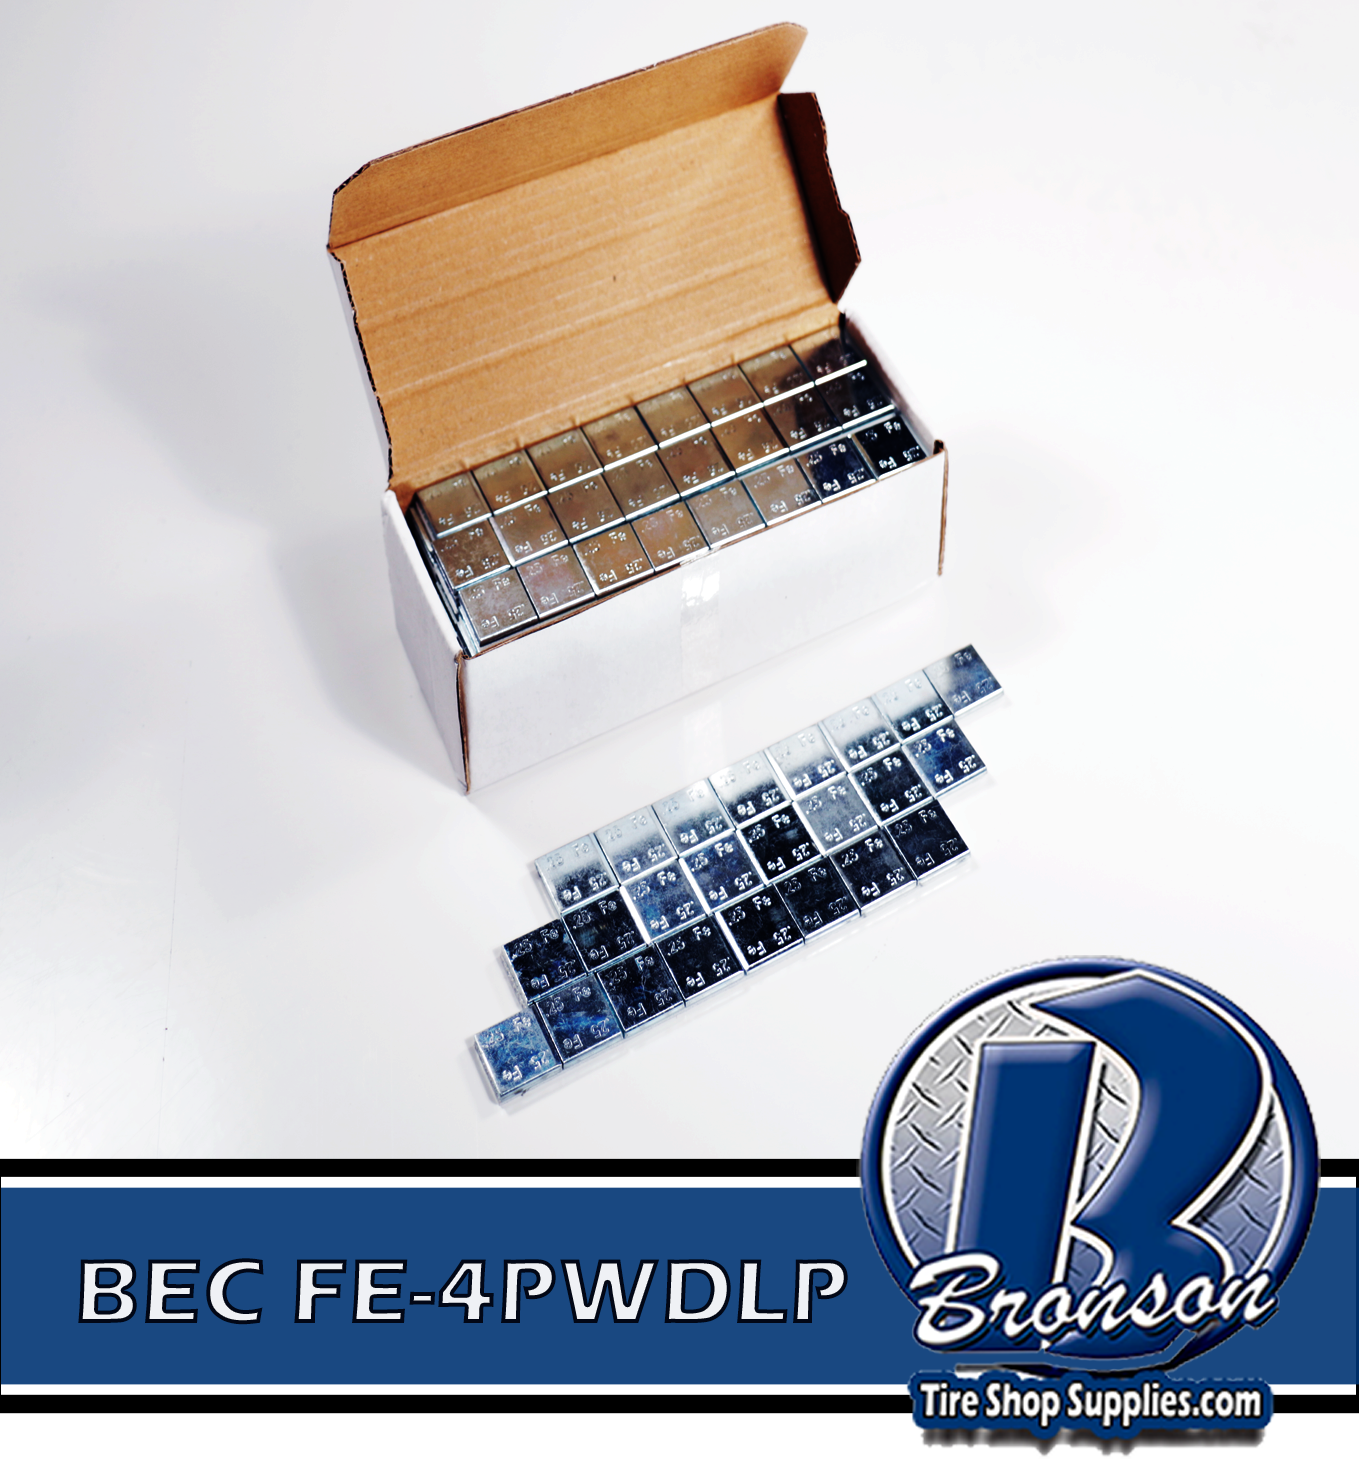 BEC FE-4PWDLP 1/4oz Low P